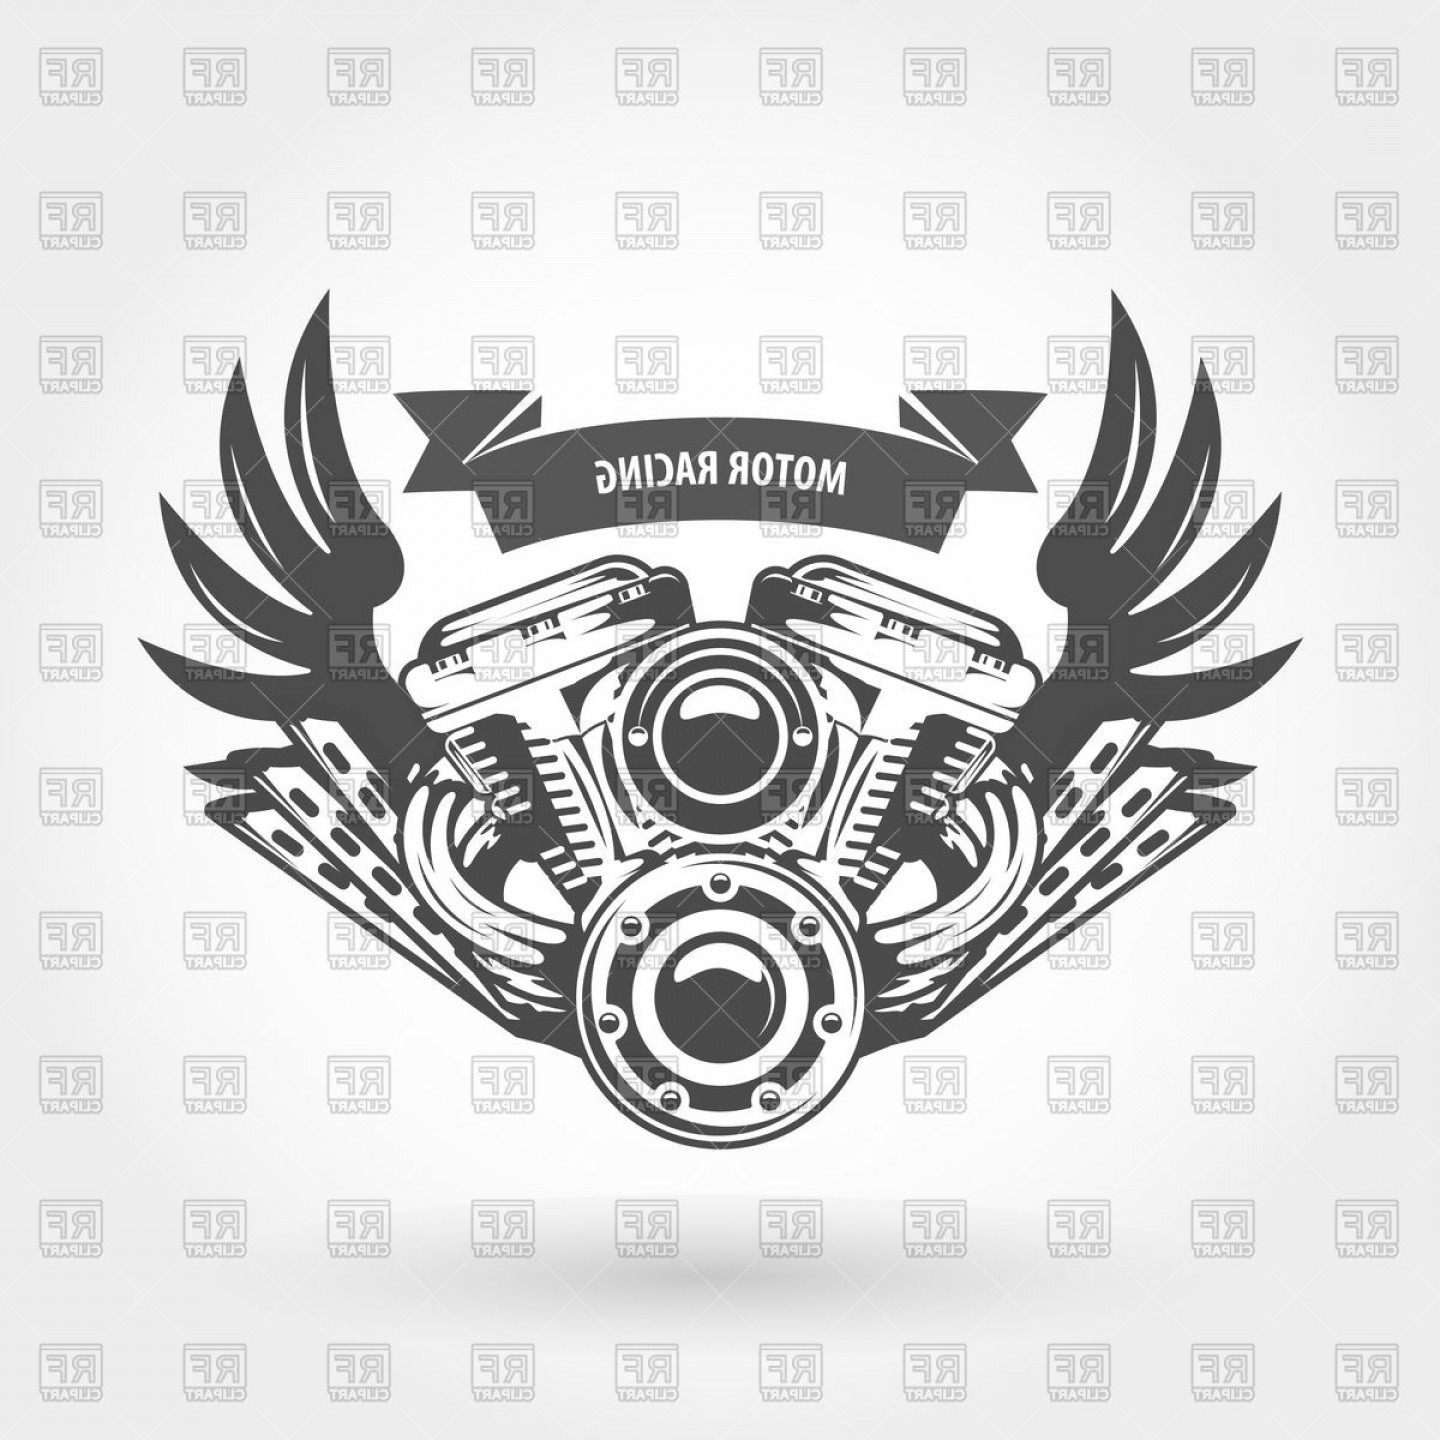 Motorcycle with wings clipart black and white stock Motorcycle With Wings Silhouette Vector | lamaison stock